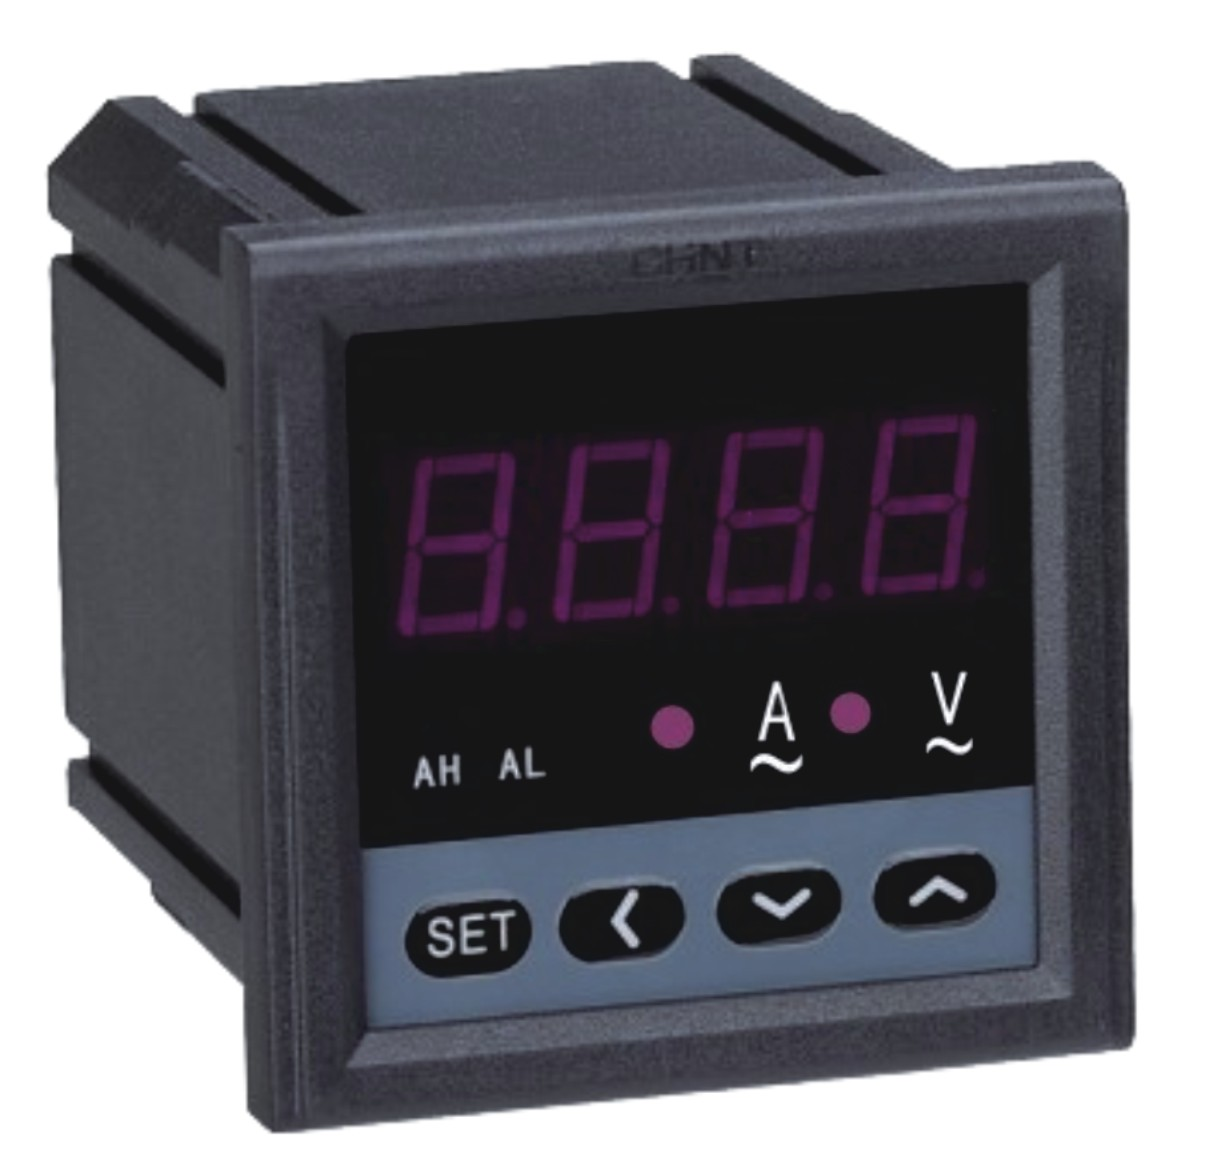 PN666-□ series digital current and voltage combined meter